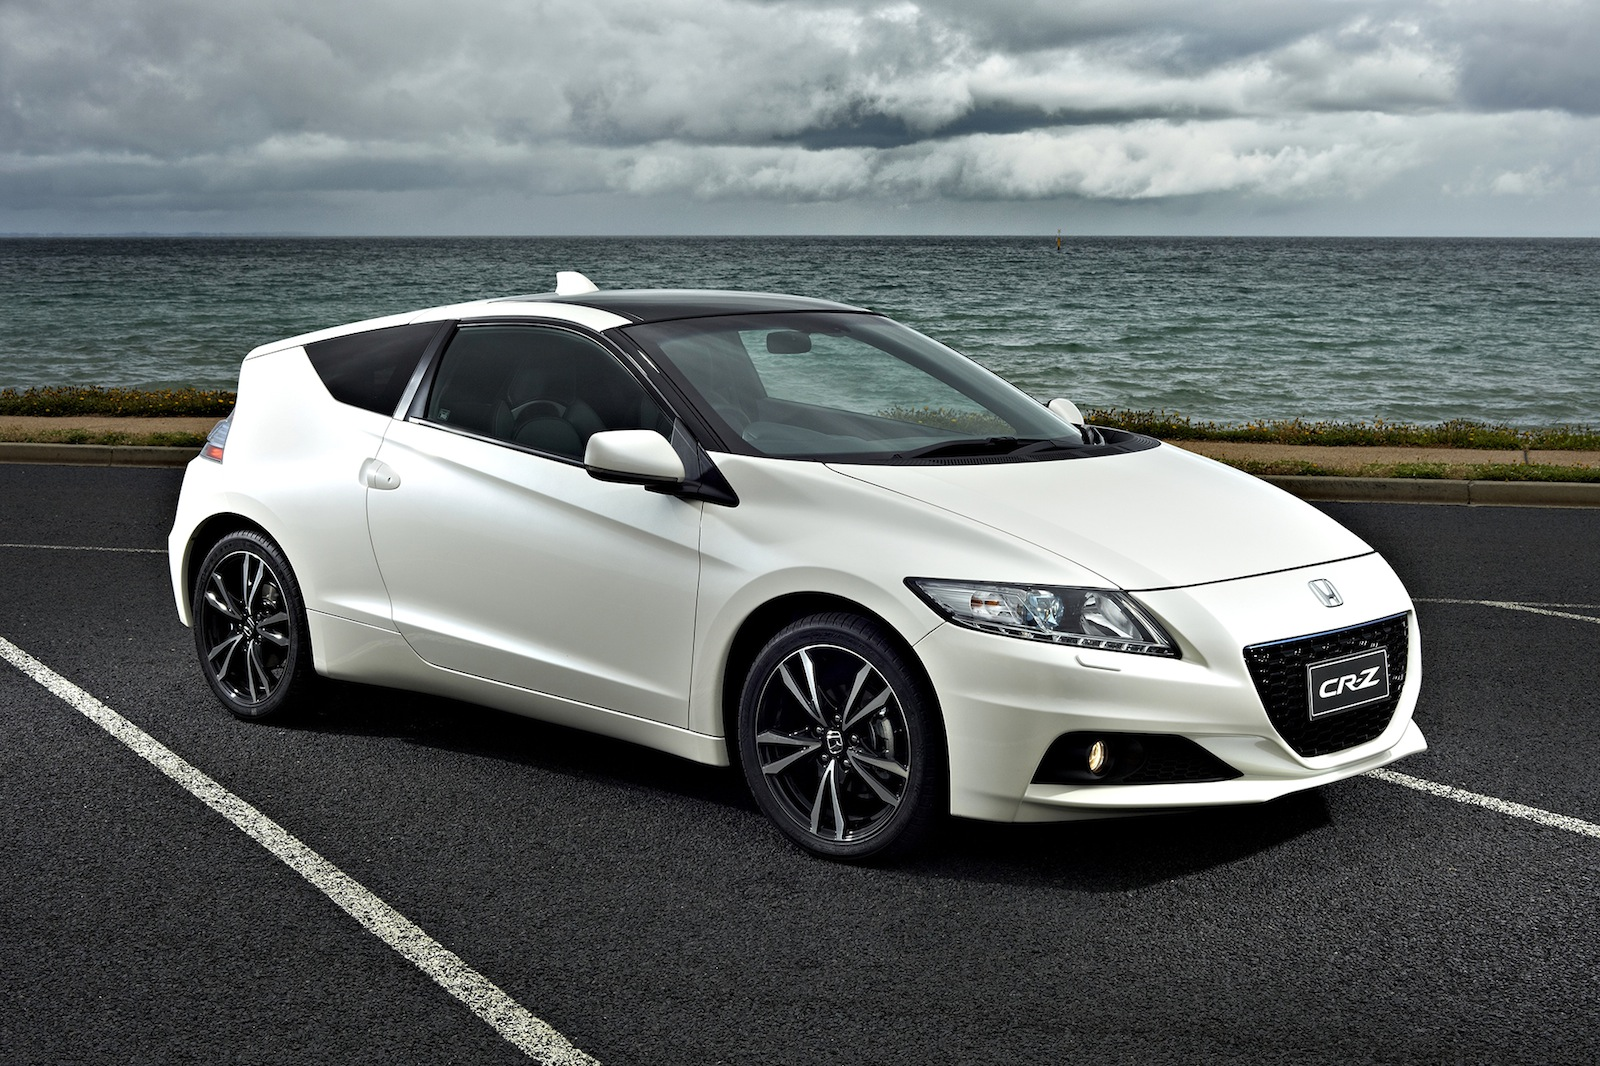 honda cr-z 2013 wallpaper